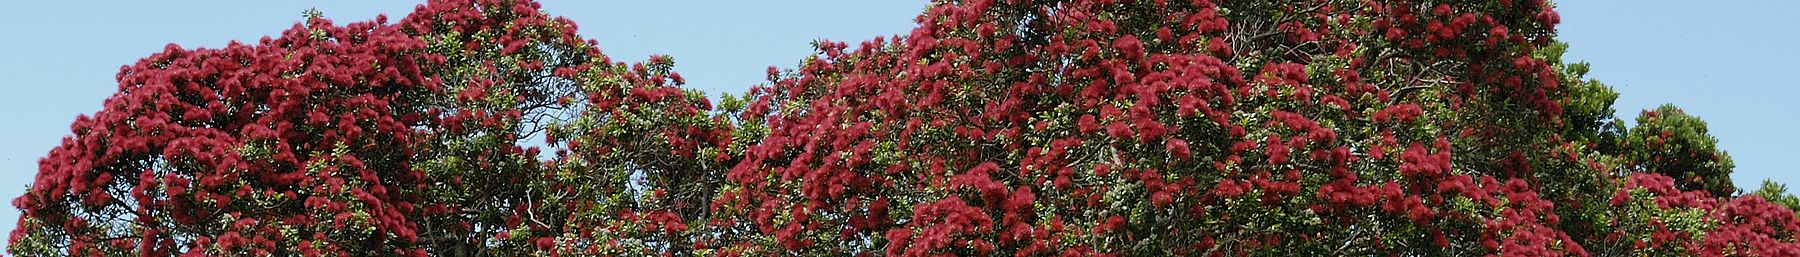 Pohutukawa (New Zealand Christmas tree) in flower at Christmas